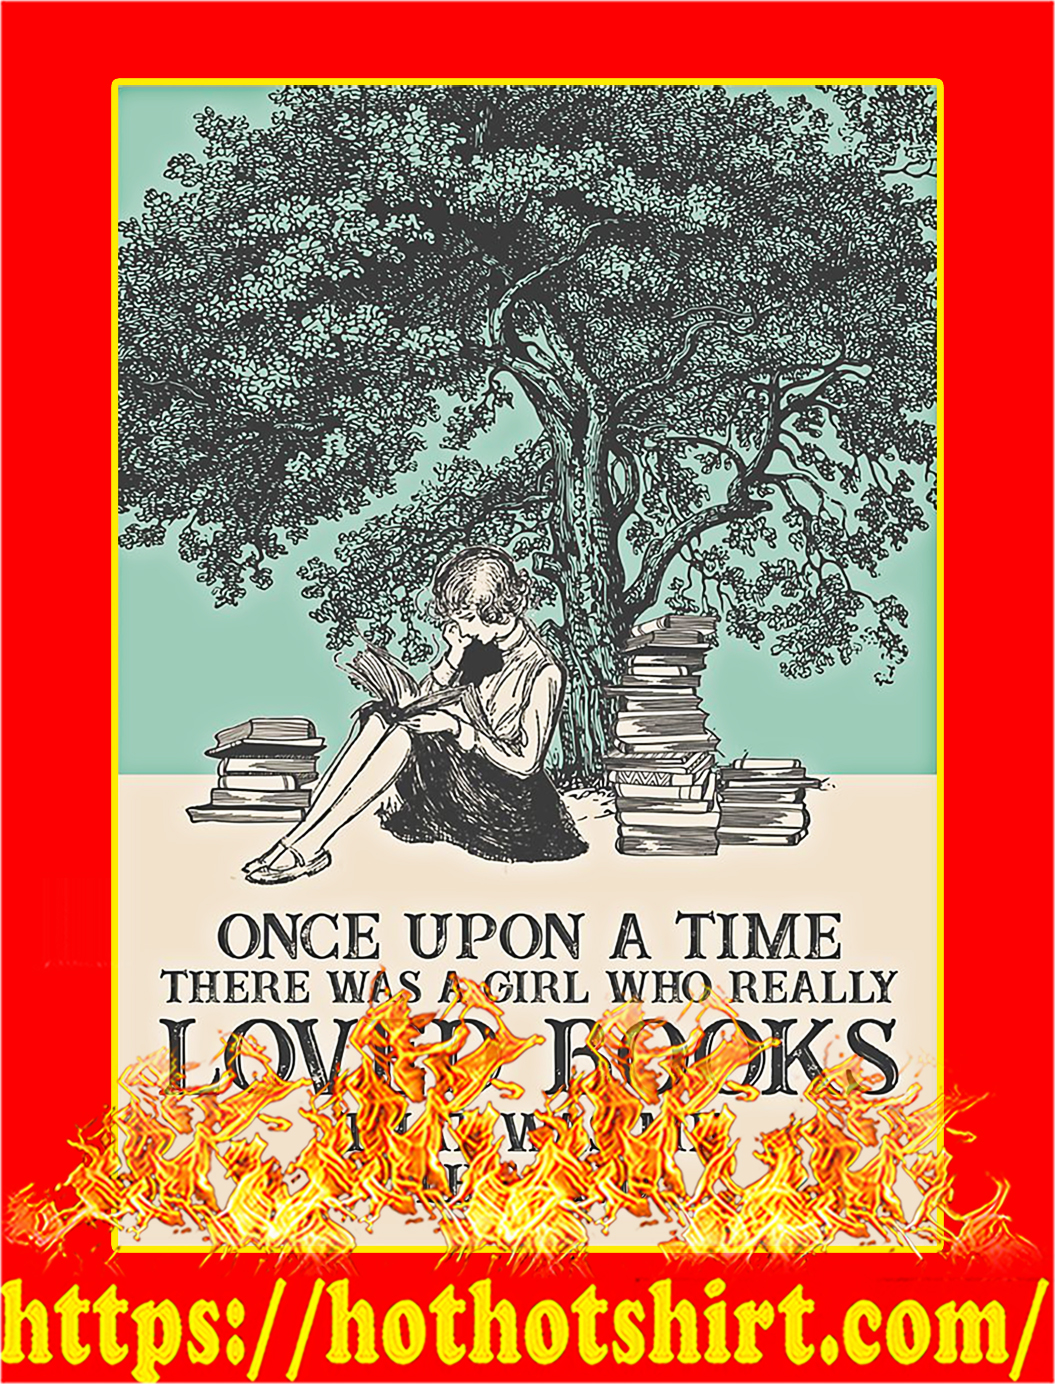 One upon a time there was a girl who really loved books that was me the end poster - A3